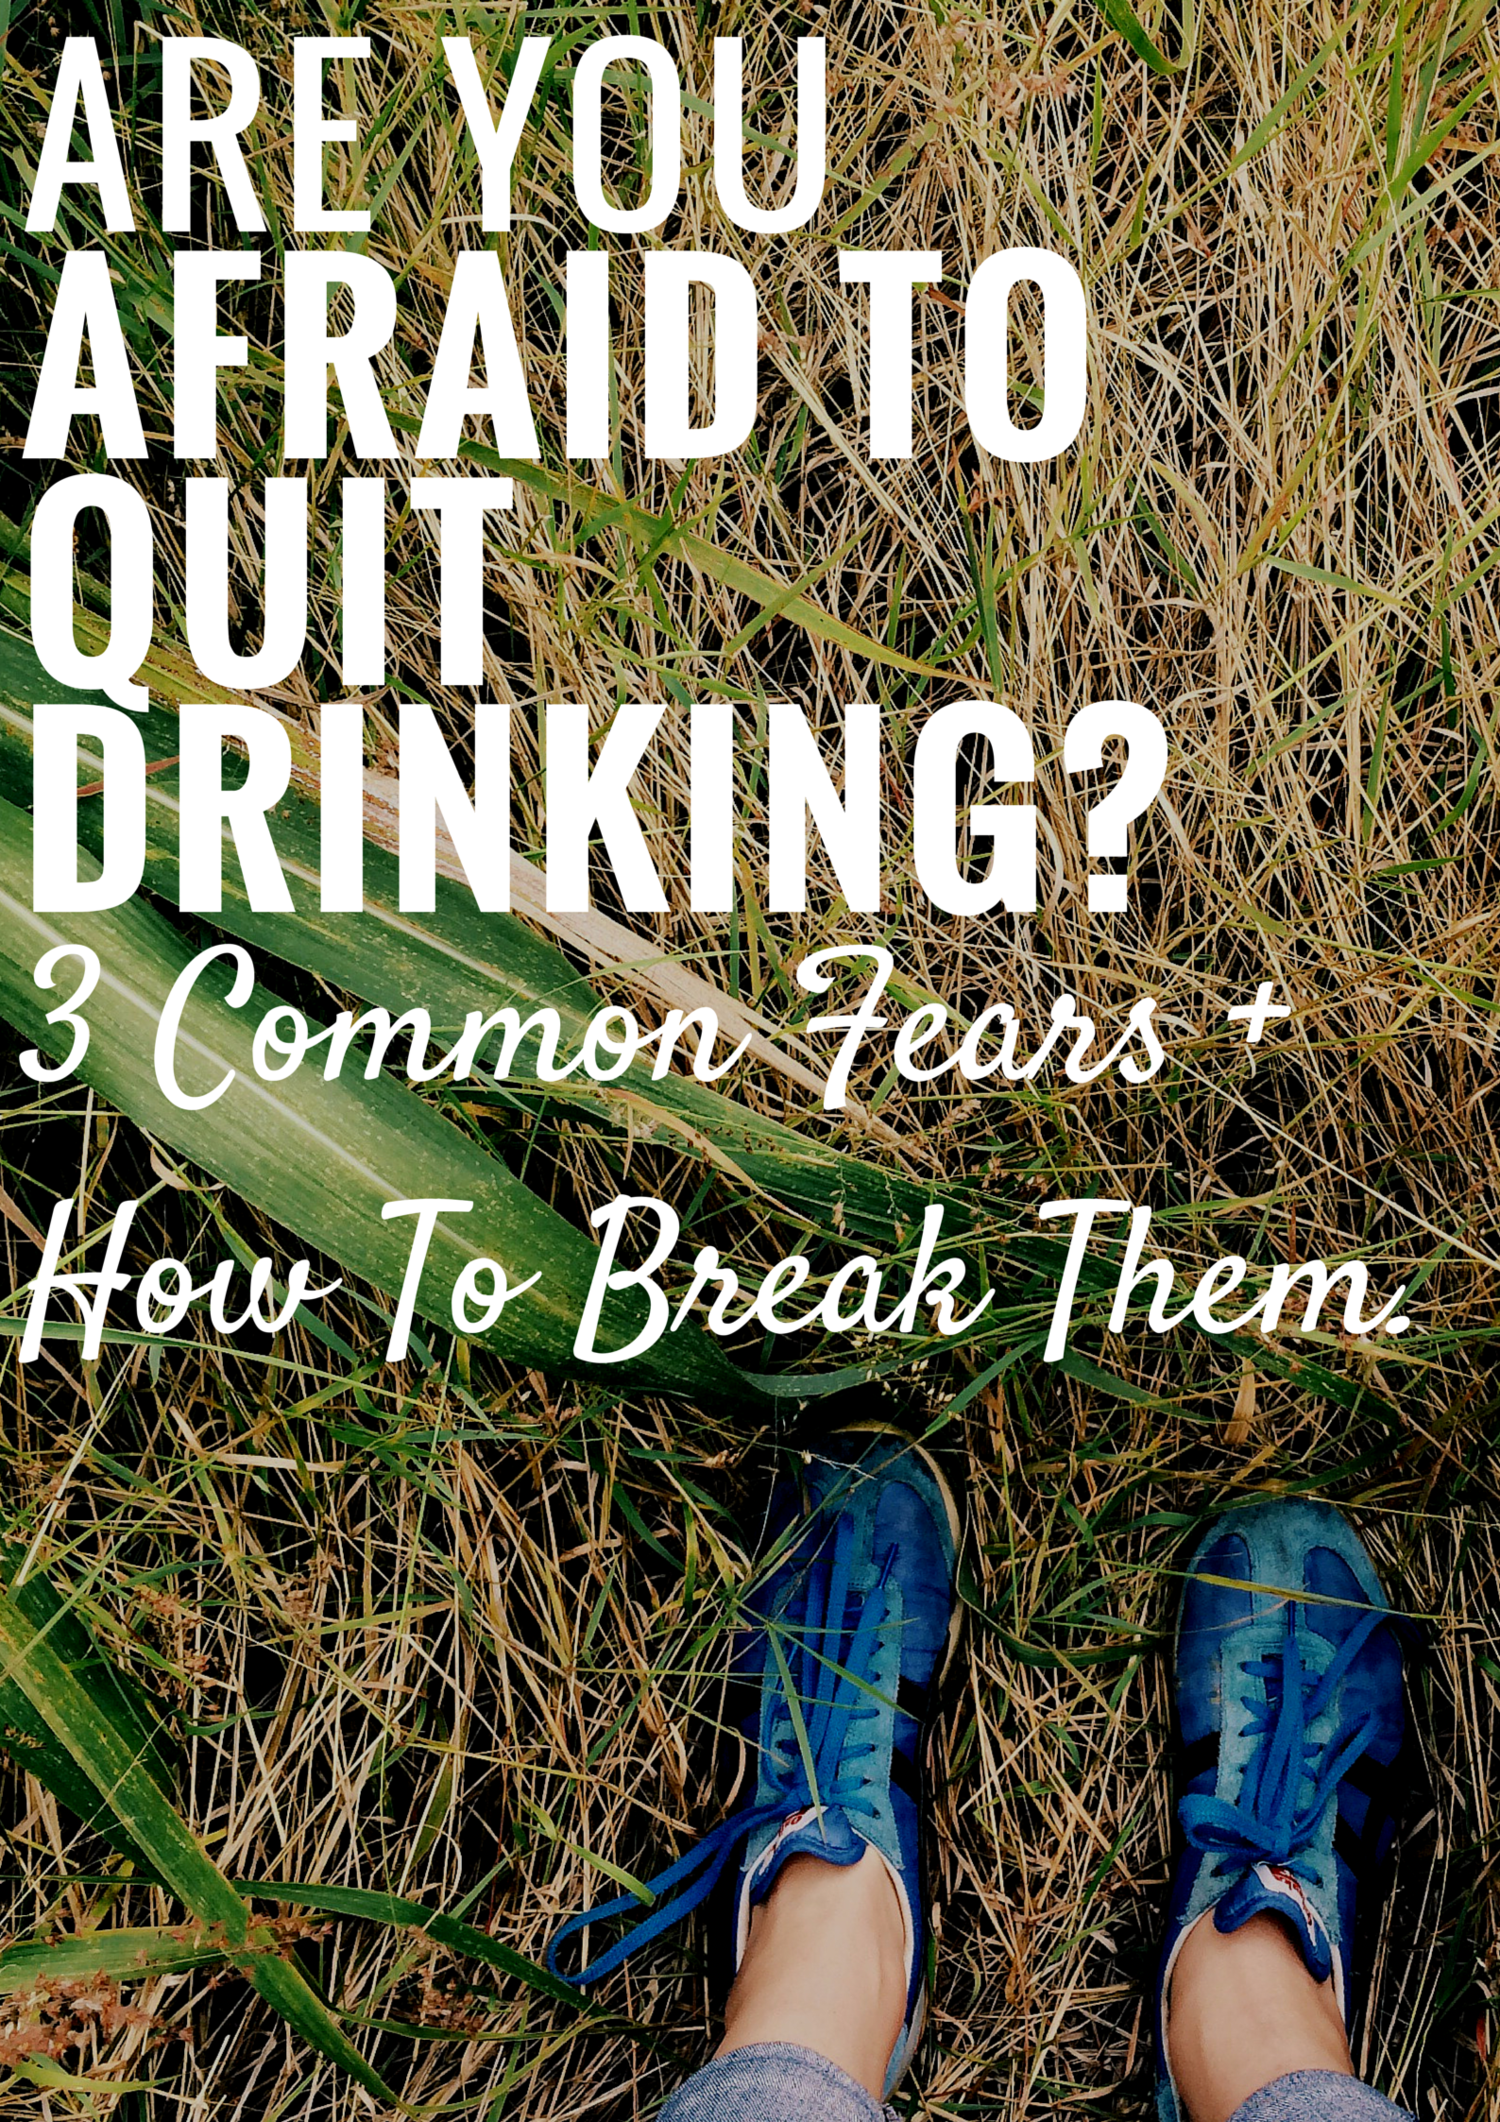 Afraid To Quit Drinking? 3 Common Fears and How To Move Past